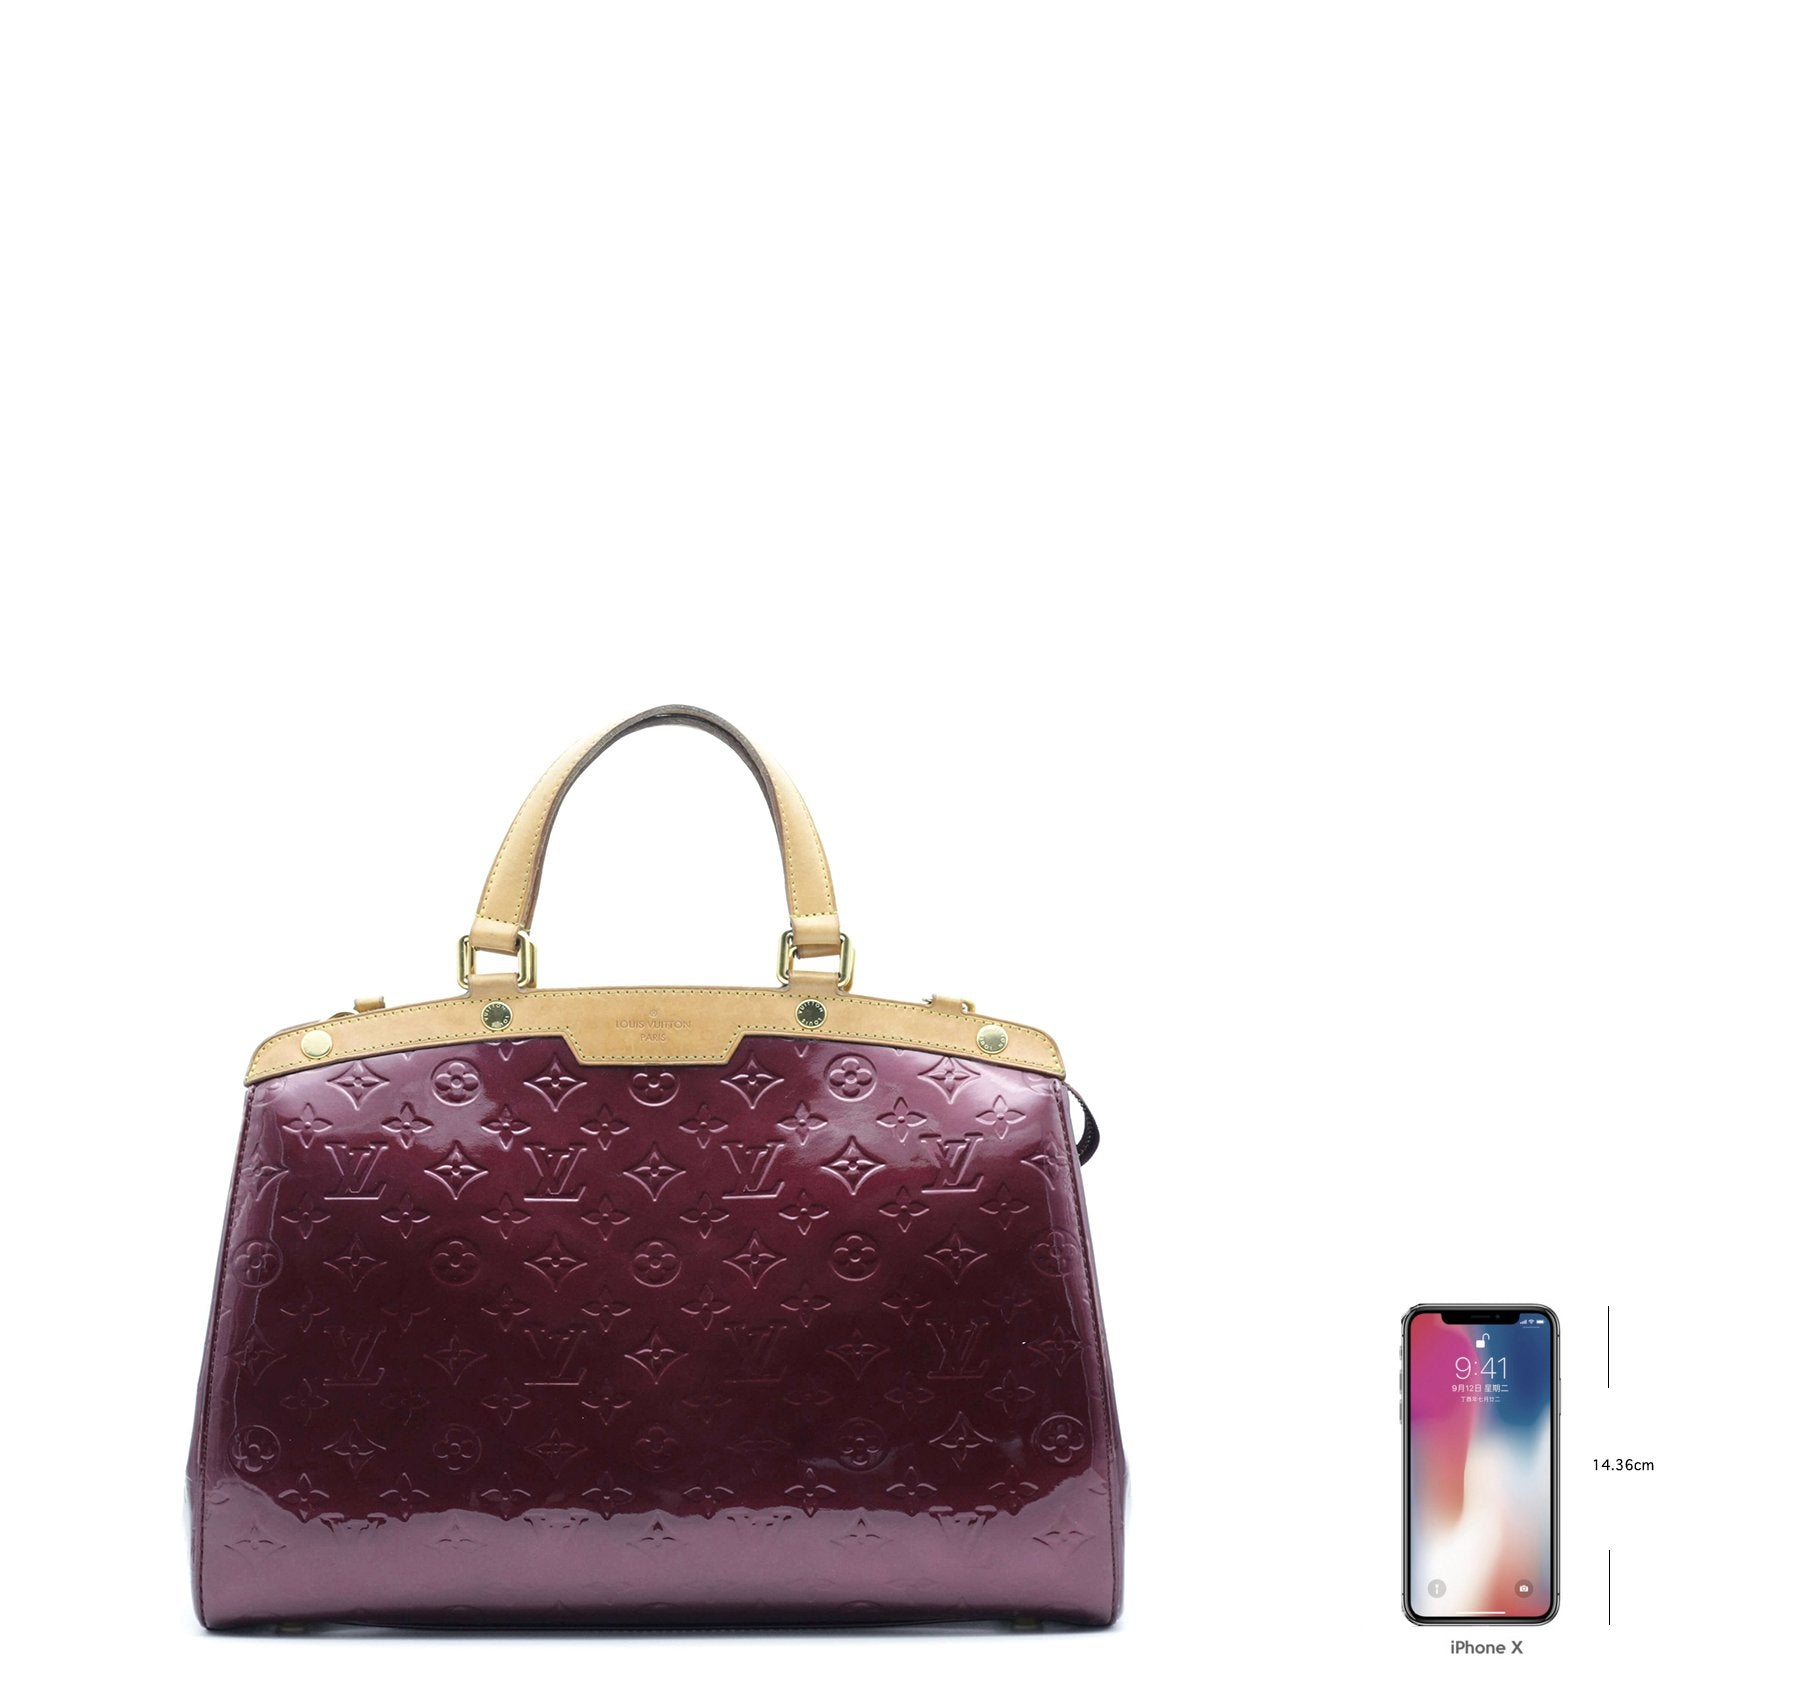 Amarante Monogram Vernis Brea GM Bag